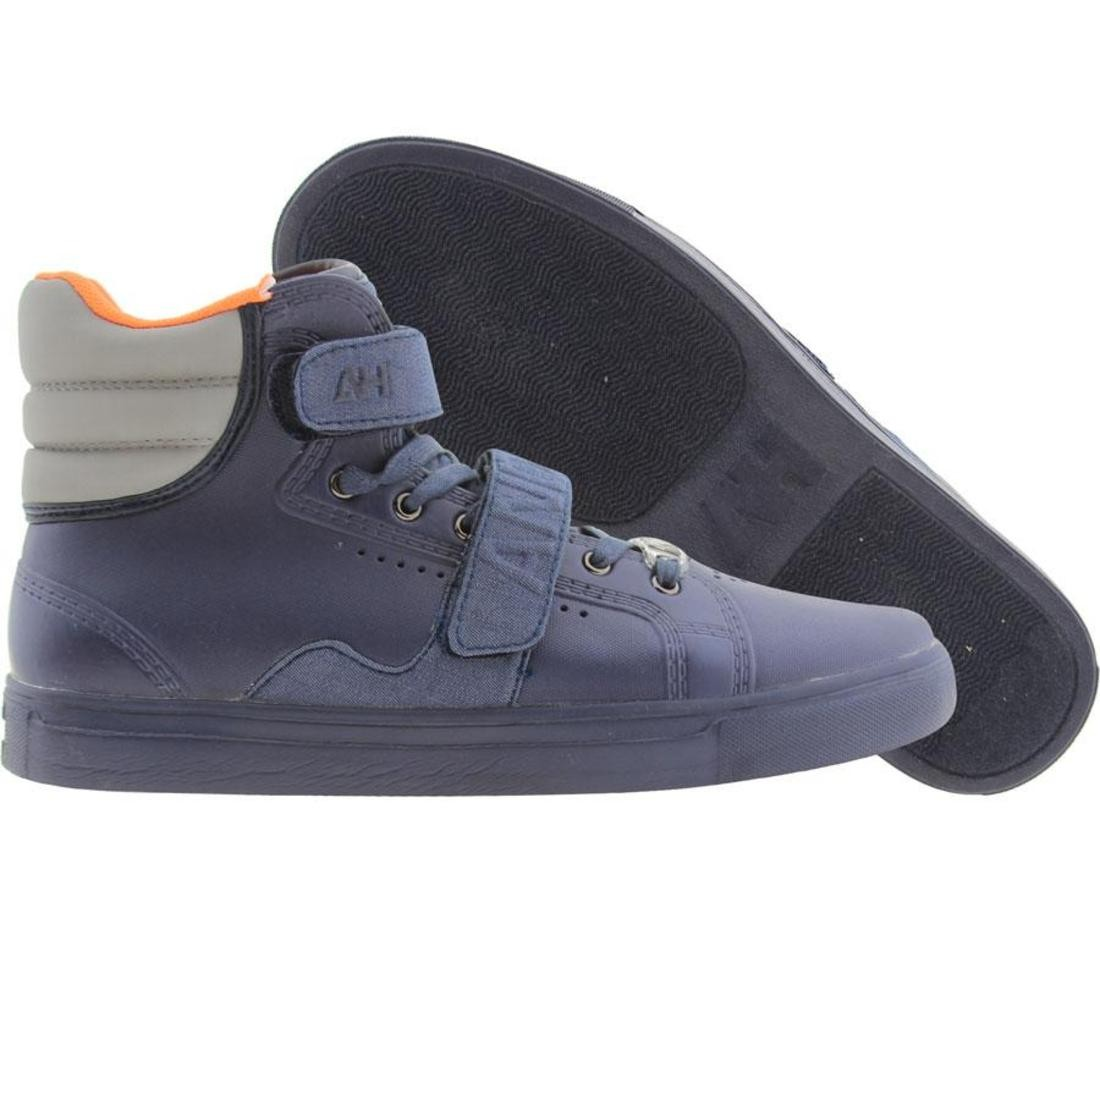 【海外限定】ハイ 靴 スニーカー 【 AH BY ANDROID HOMME PROPULSION HIGH EVA NAVY 】